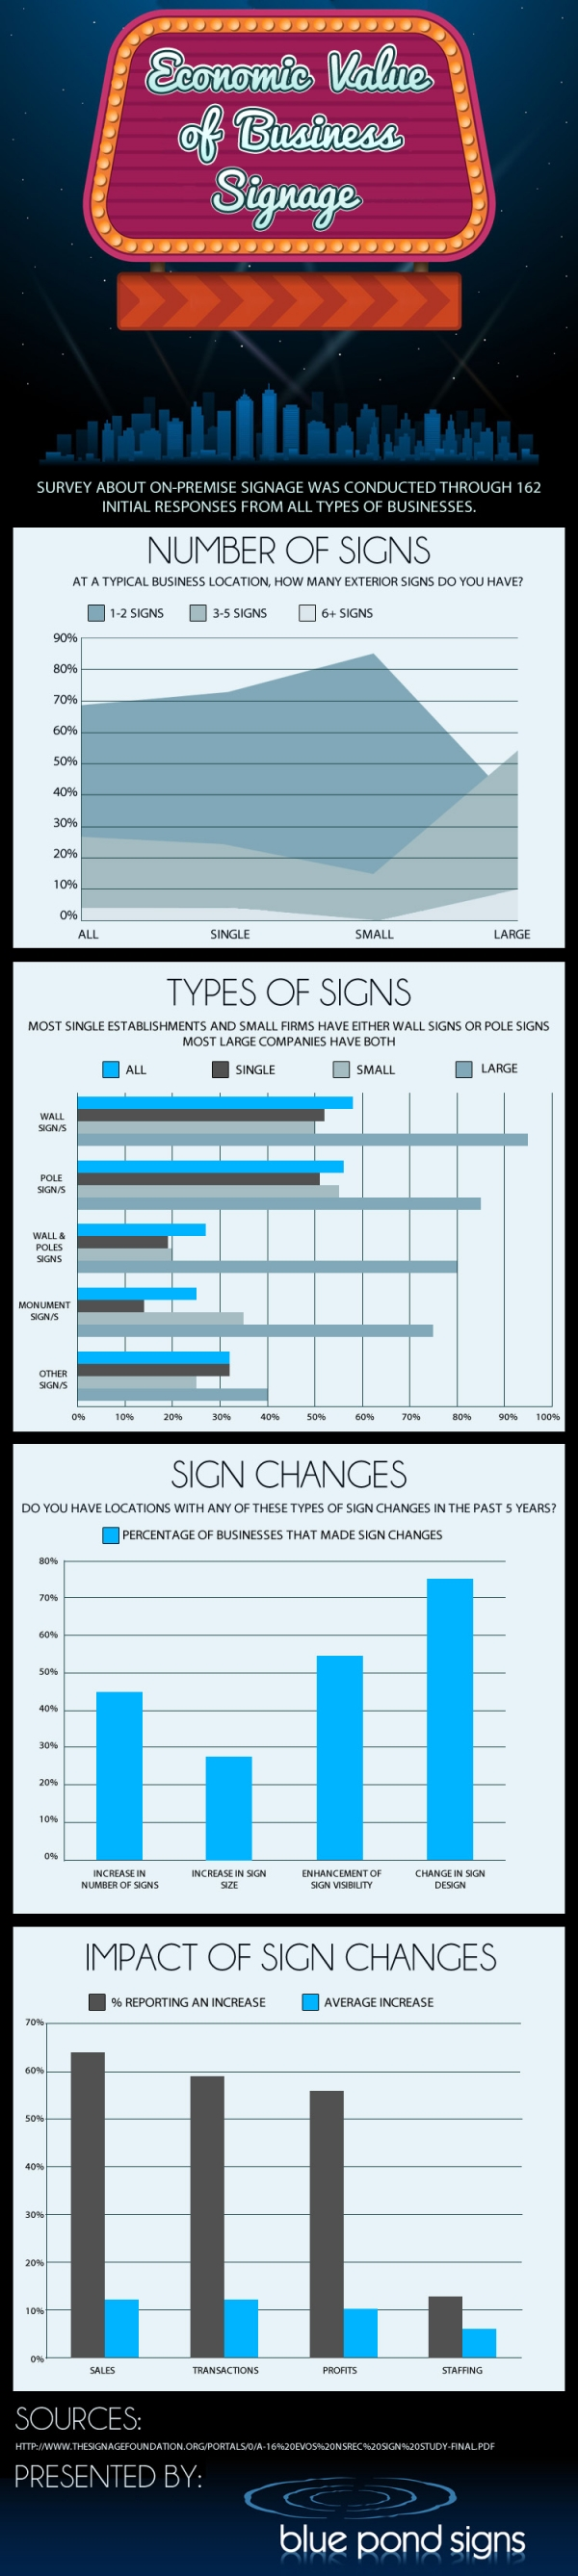 The Economic Value of Business Signage [Infographic]